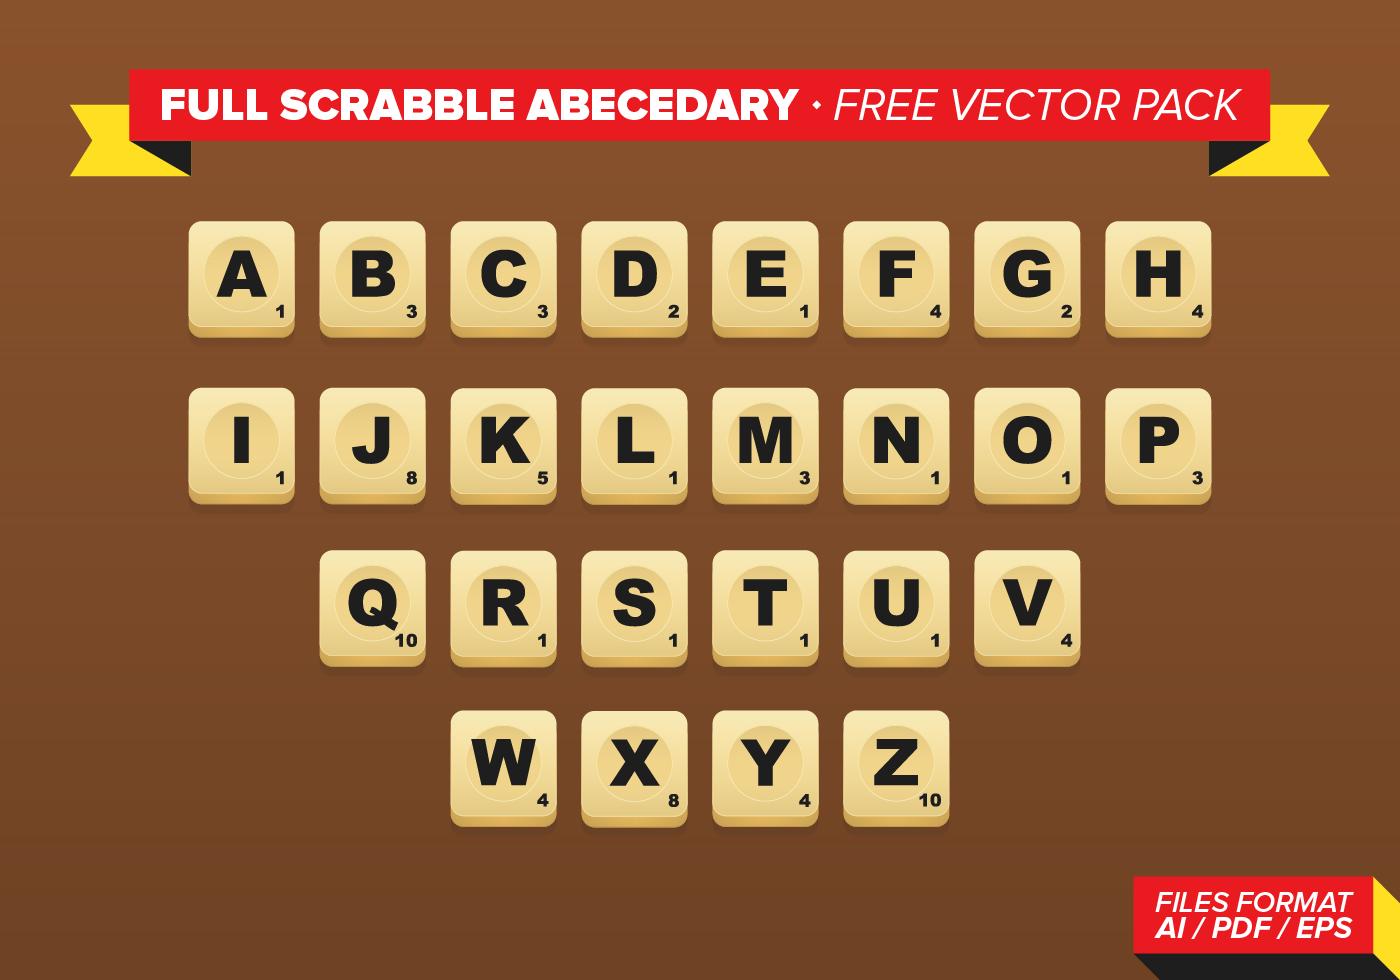 Full Scrabble Abecedary Free Vector Pack Download Free